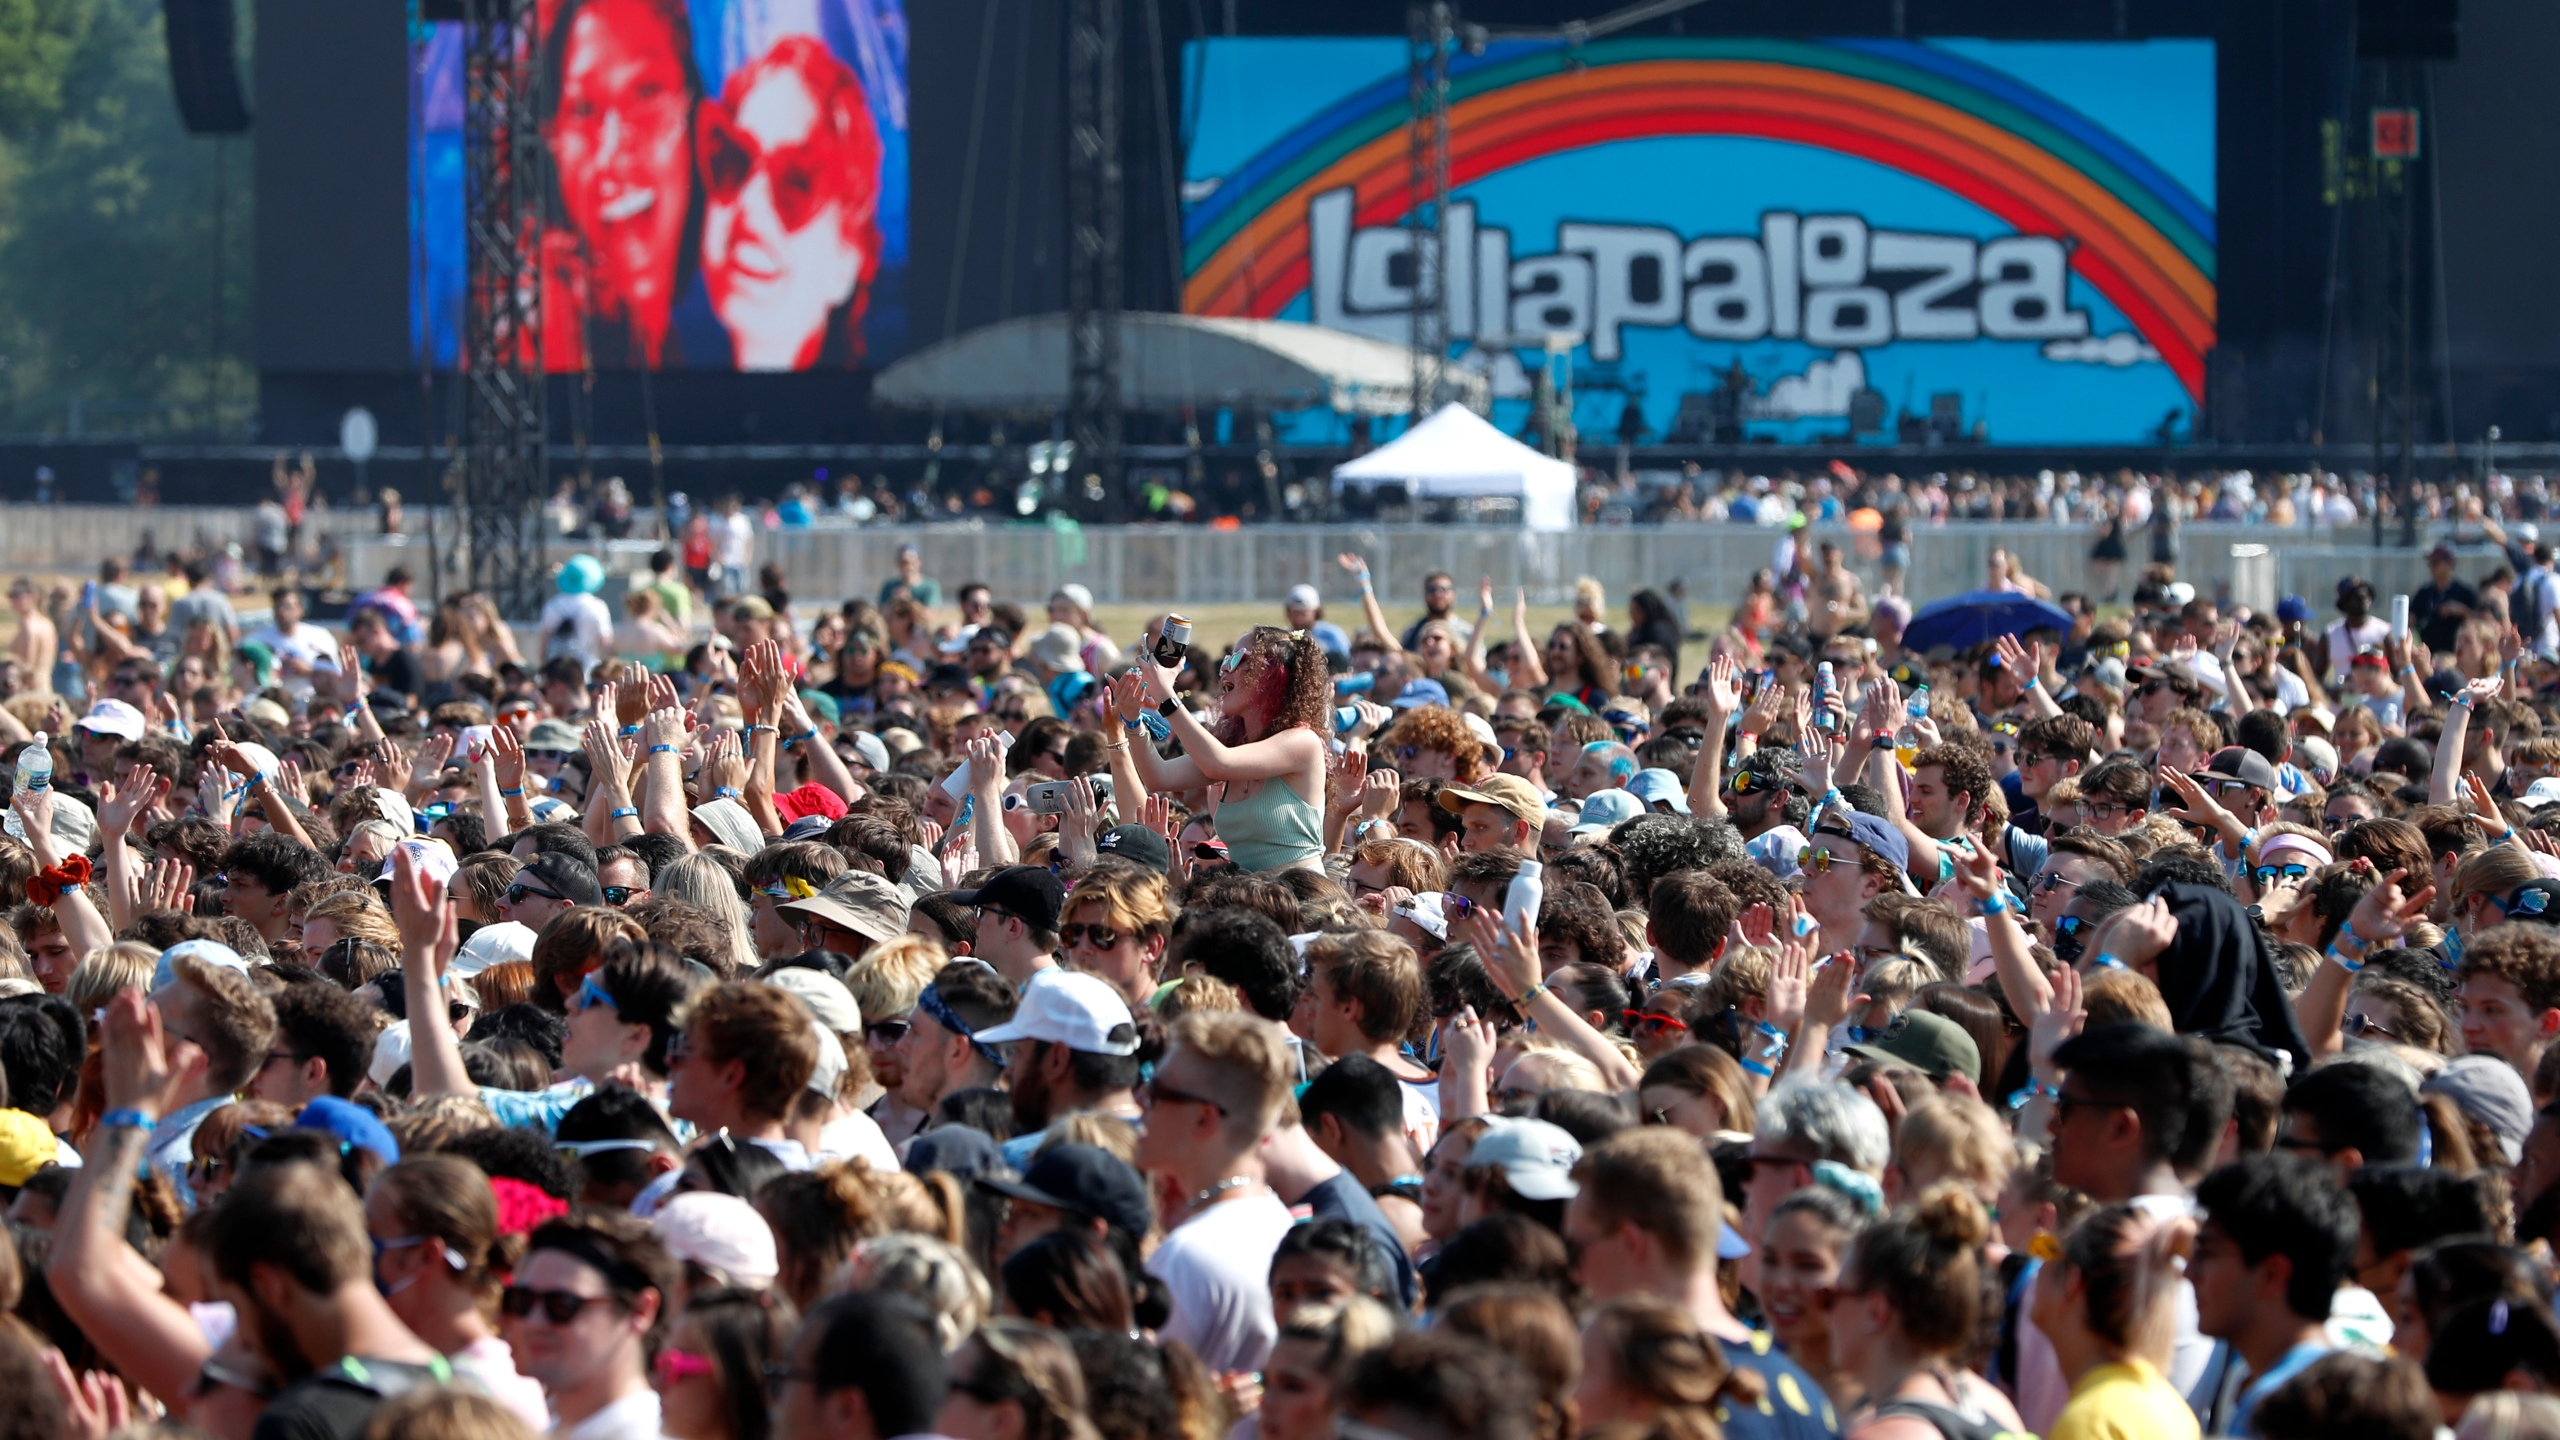 In this July 29, 2021 file photo, fans gather and cheer on day one of the Lollapalooza music festival at Grant Park in Chicago. Chicago health officials on Thursday, Aug. 12, 2021, reported 203 cases of COVID-19 connected to Lollapalooza, casting it as a number that was anticipated and not yet linked to any hospitalizations or deaths. (AP Photo/Shafkat Anowar File)